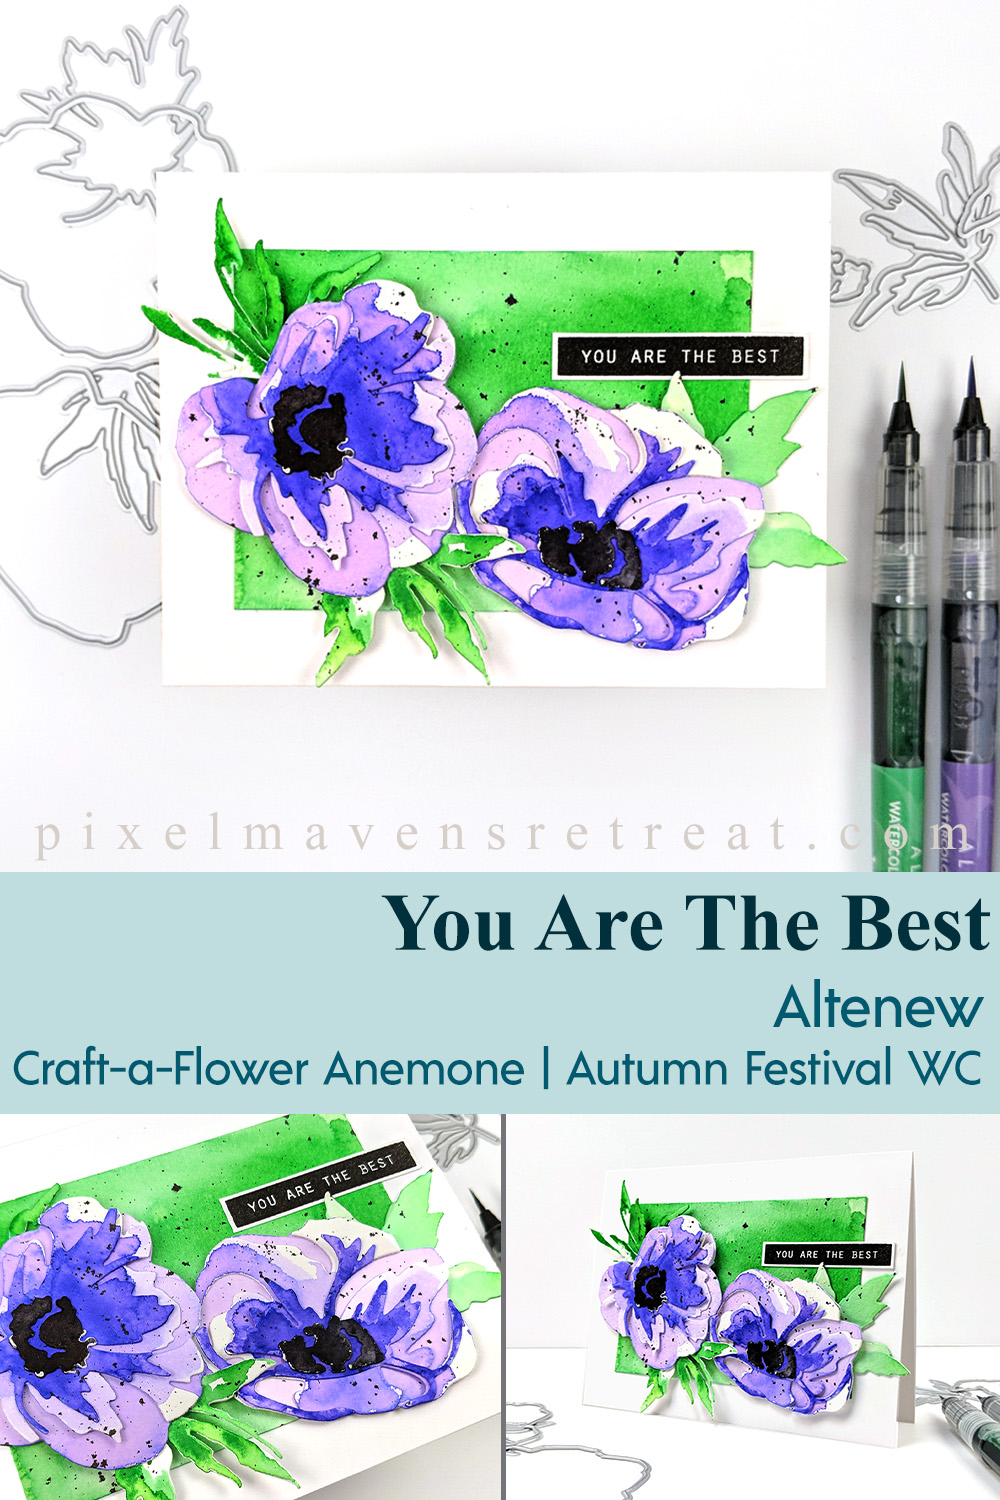 Altenew Craft-A-Flower: Anemone Release Blog Hop + Giveaway